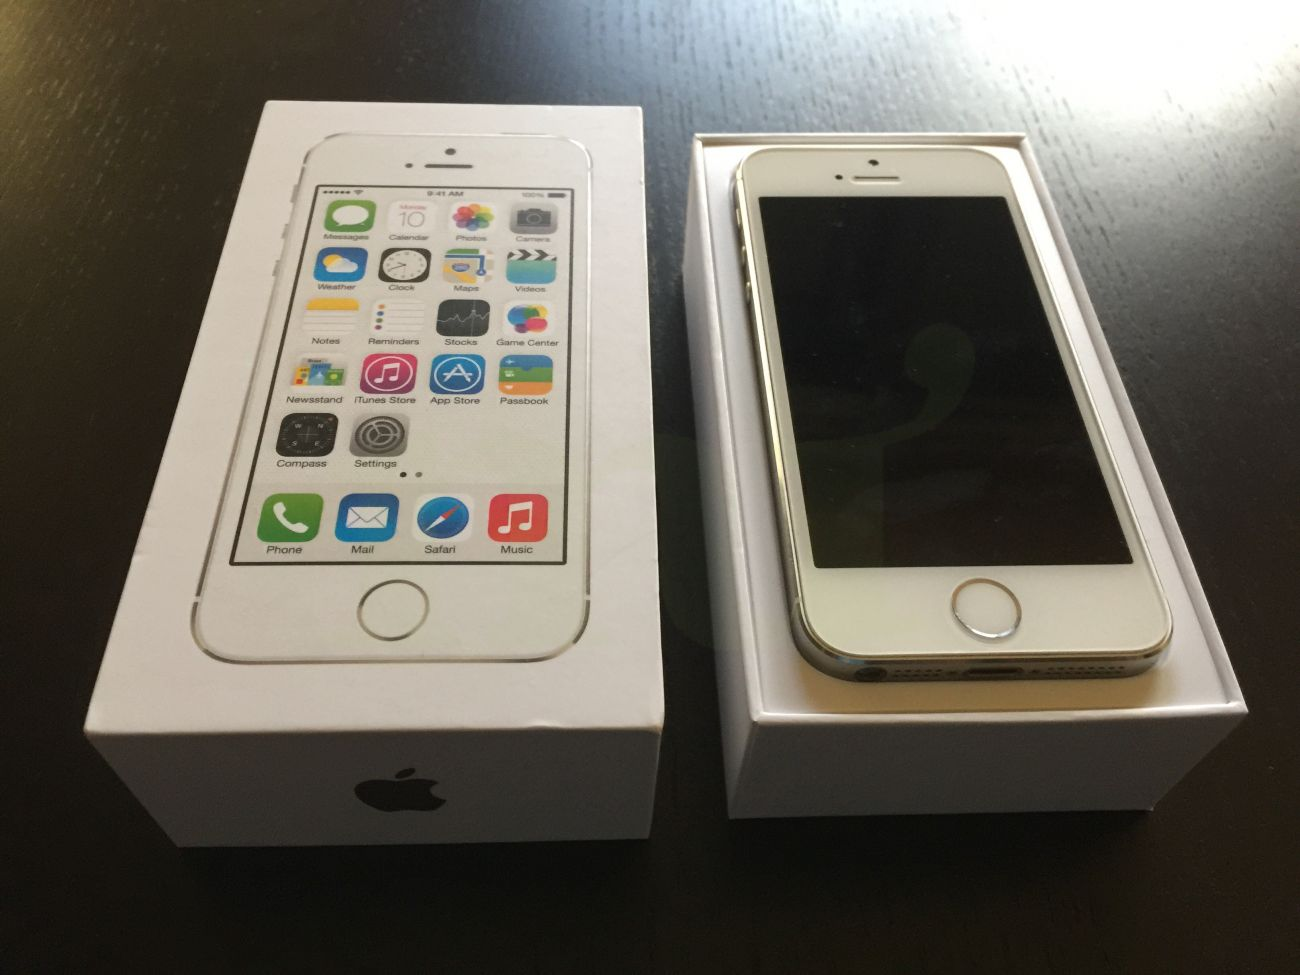 Iphone 5 S Libre Iphone Iphone 5s Blanco 32 Gb 4g Libre Touchid Venta Segunda